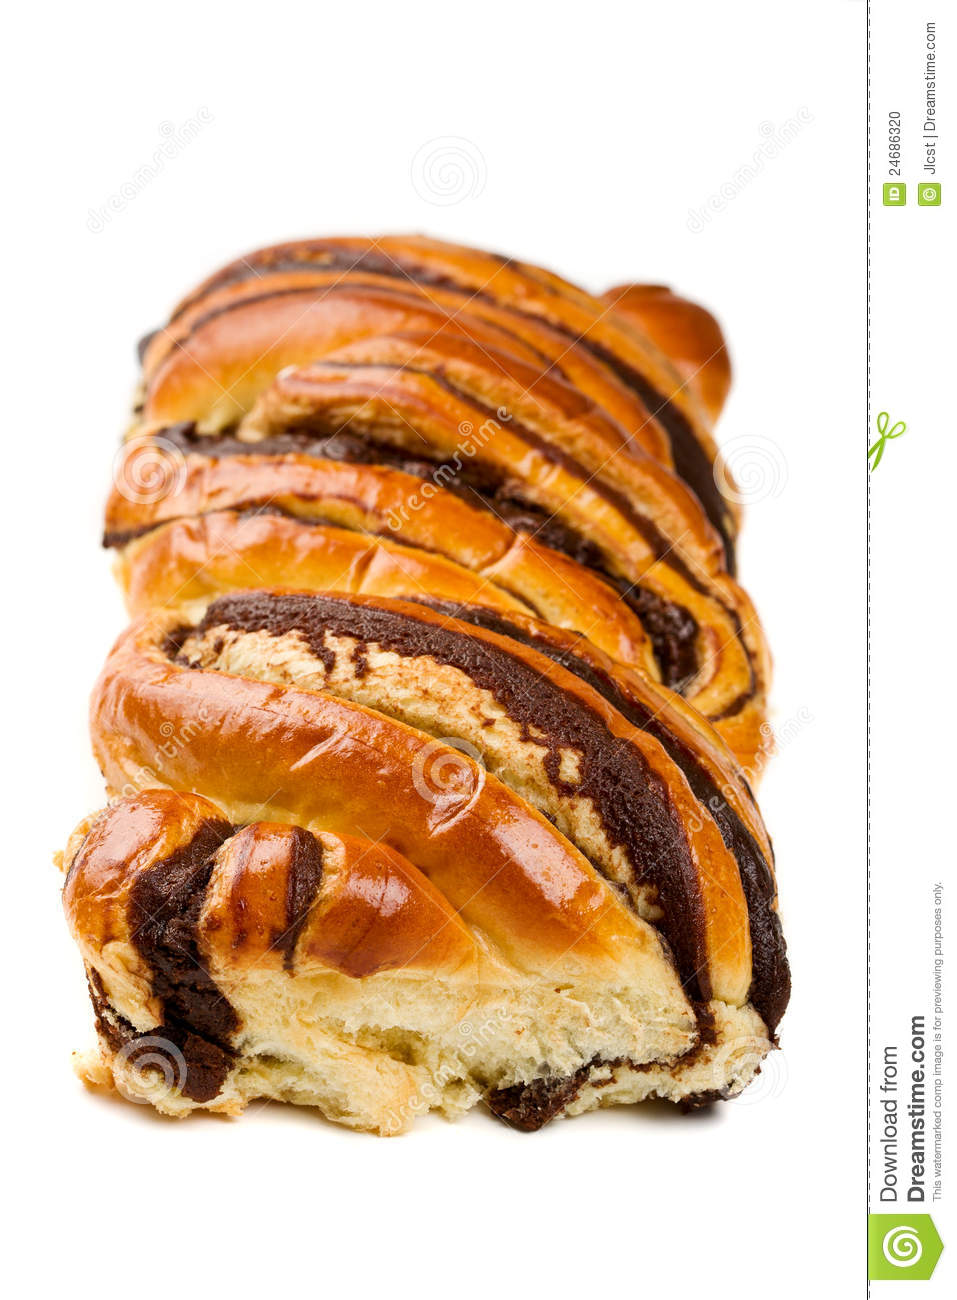 how to say brioche in french